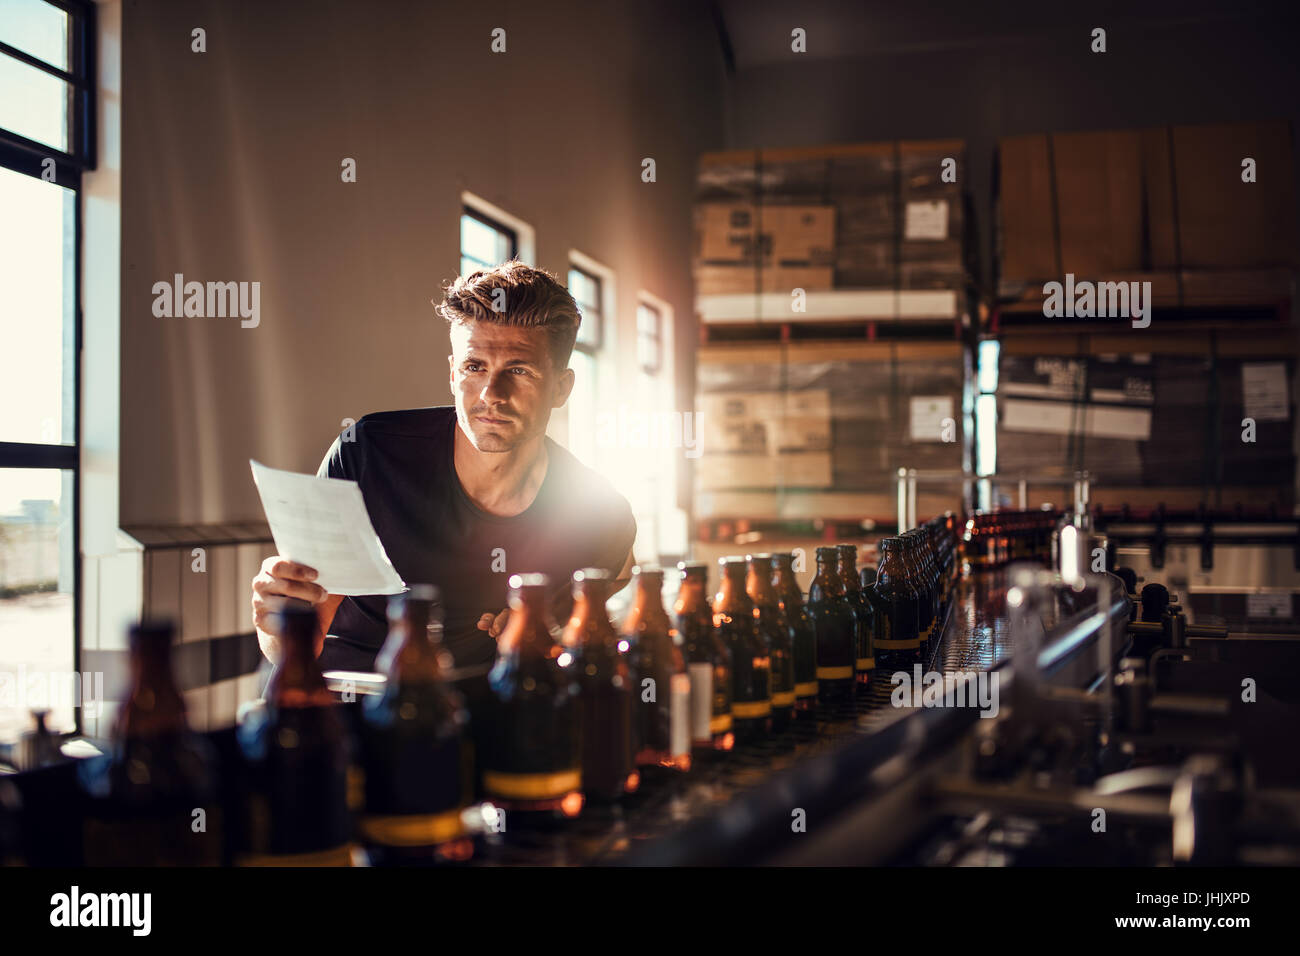 Young man supervising the process of beer manufacturing on brewery factory. Factory worker checking the process - Stock Image